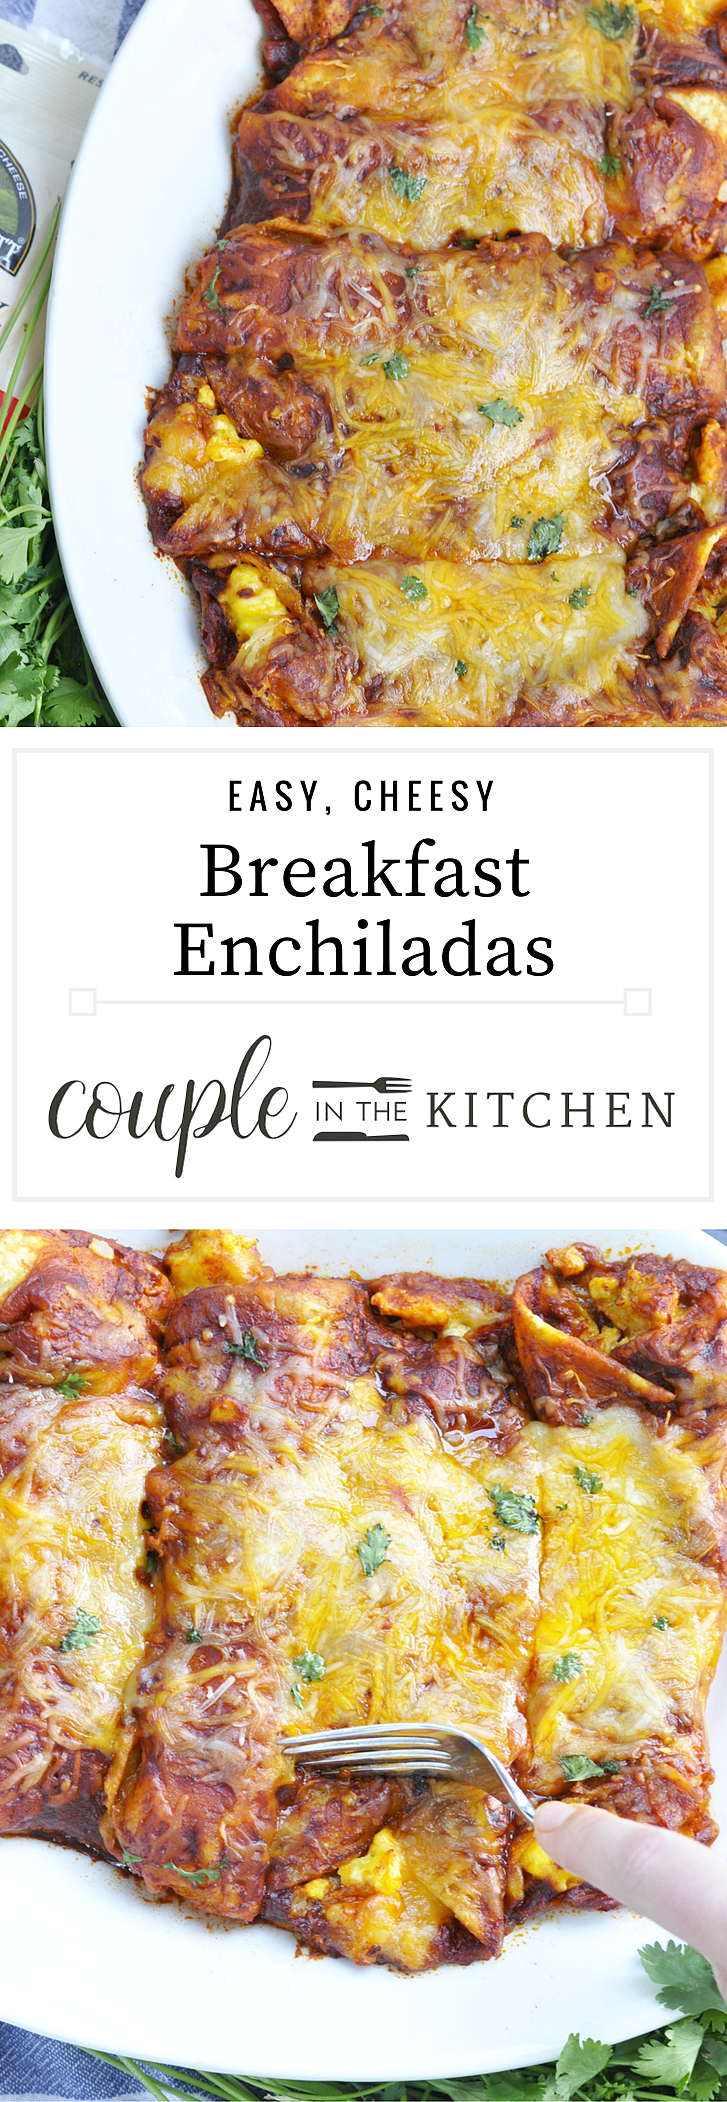 Easy Breakfast Enchiladas | coupleinthekitchen.com